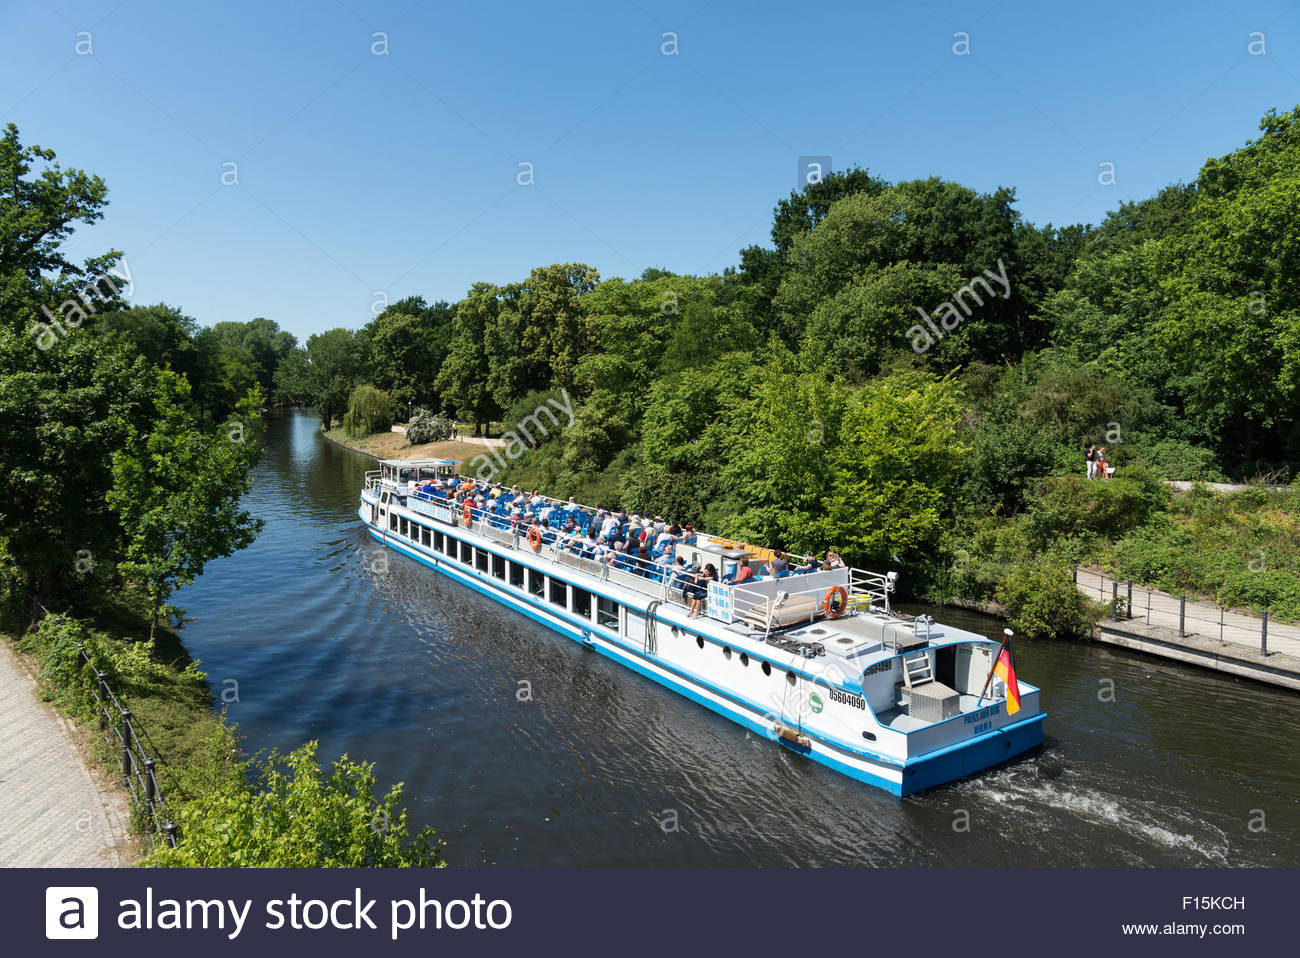 Tour boat travelling beside the Tiergarten along the Landwehr Canal, Berlin, Germany - Stock Image